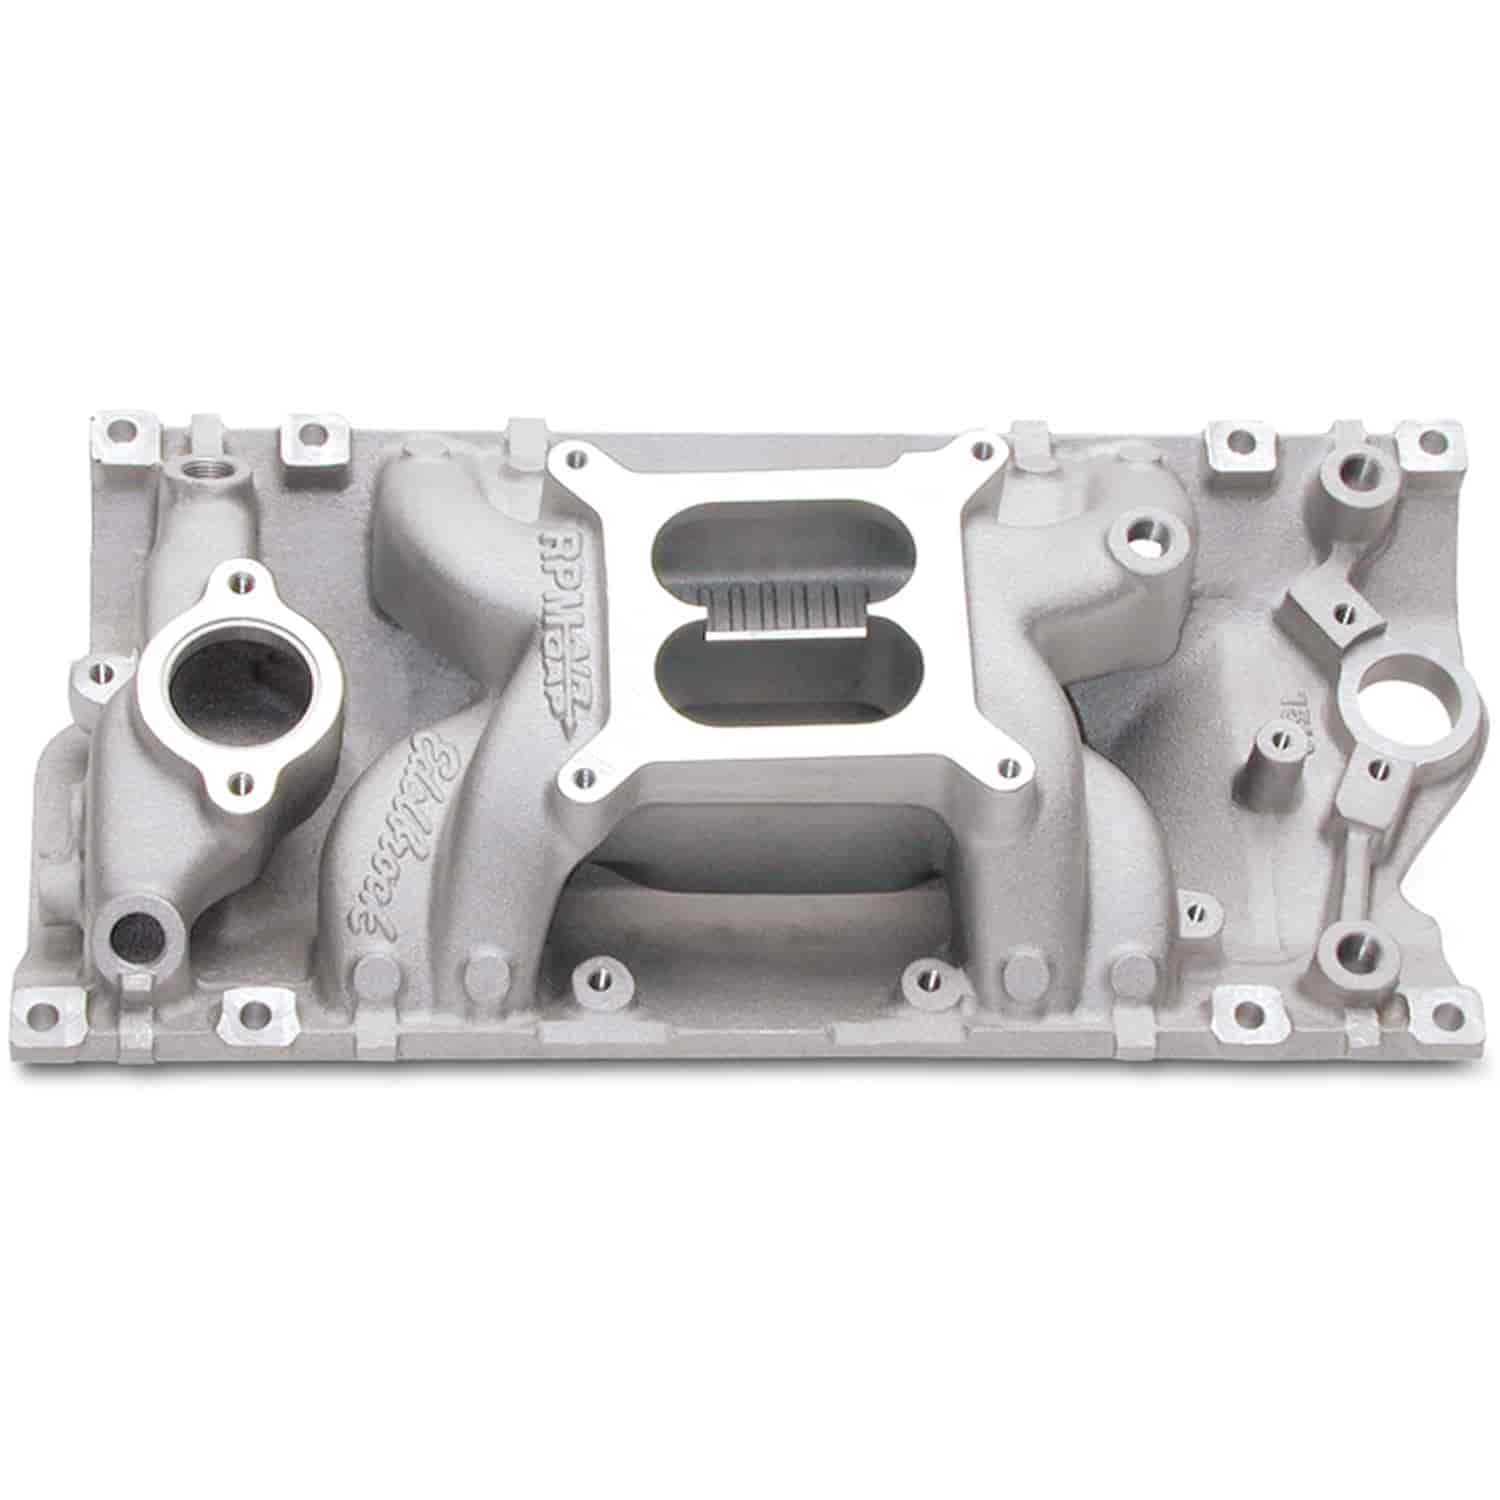 Edelbrock 7516 Rpm Air Gap Vortec Intake Manifold For Sbc With 350 Engine Diagram